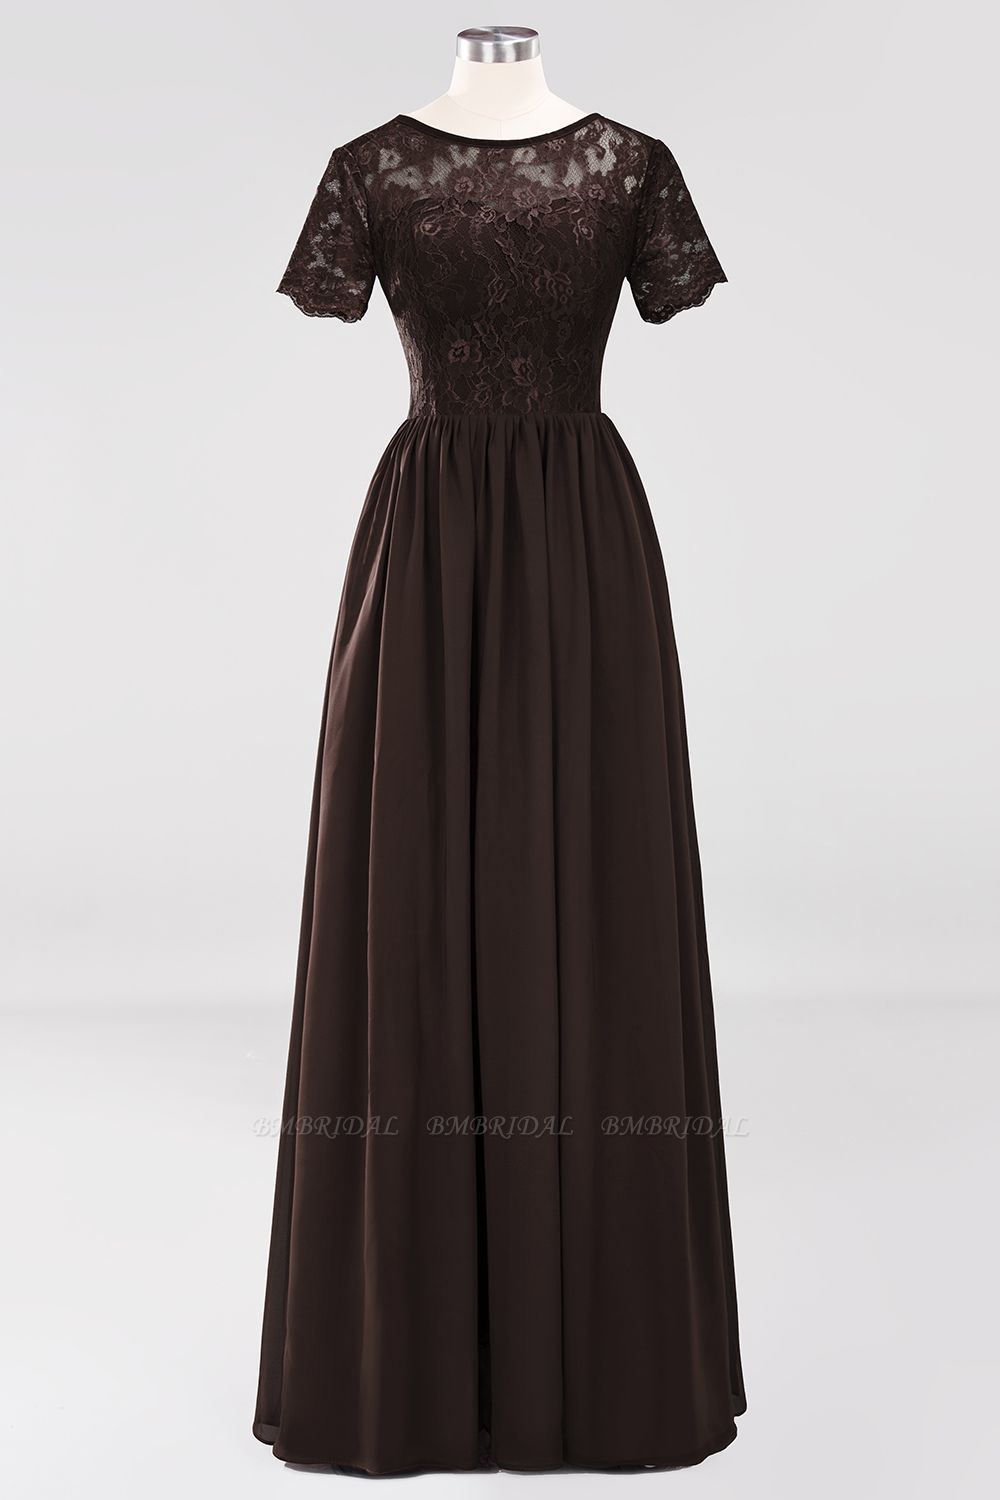 Elegant Dark Navy Long Lace Bridesmaid Dresses with Short-Sleeves